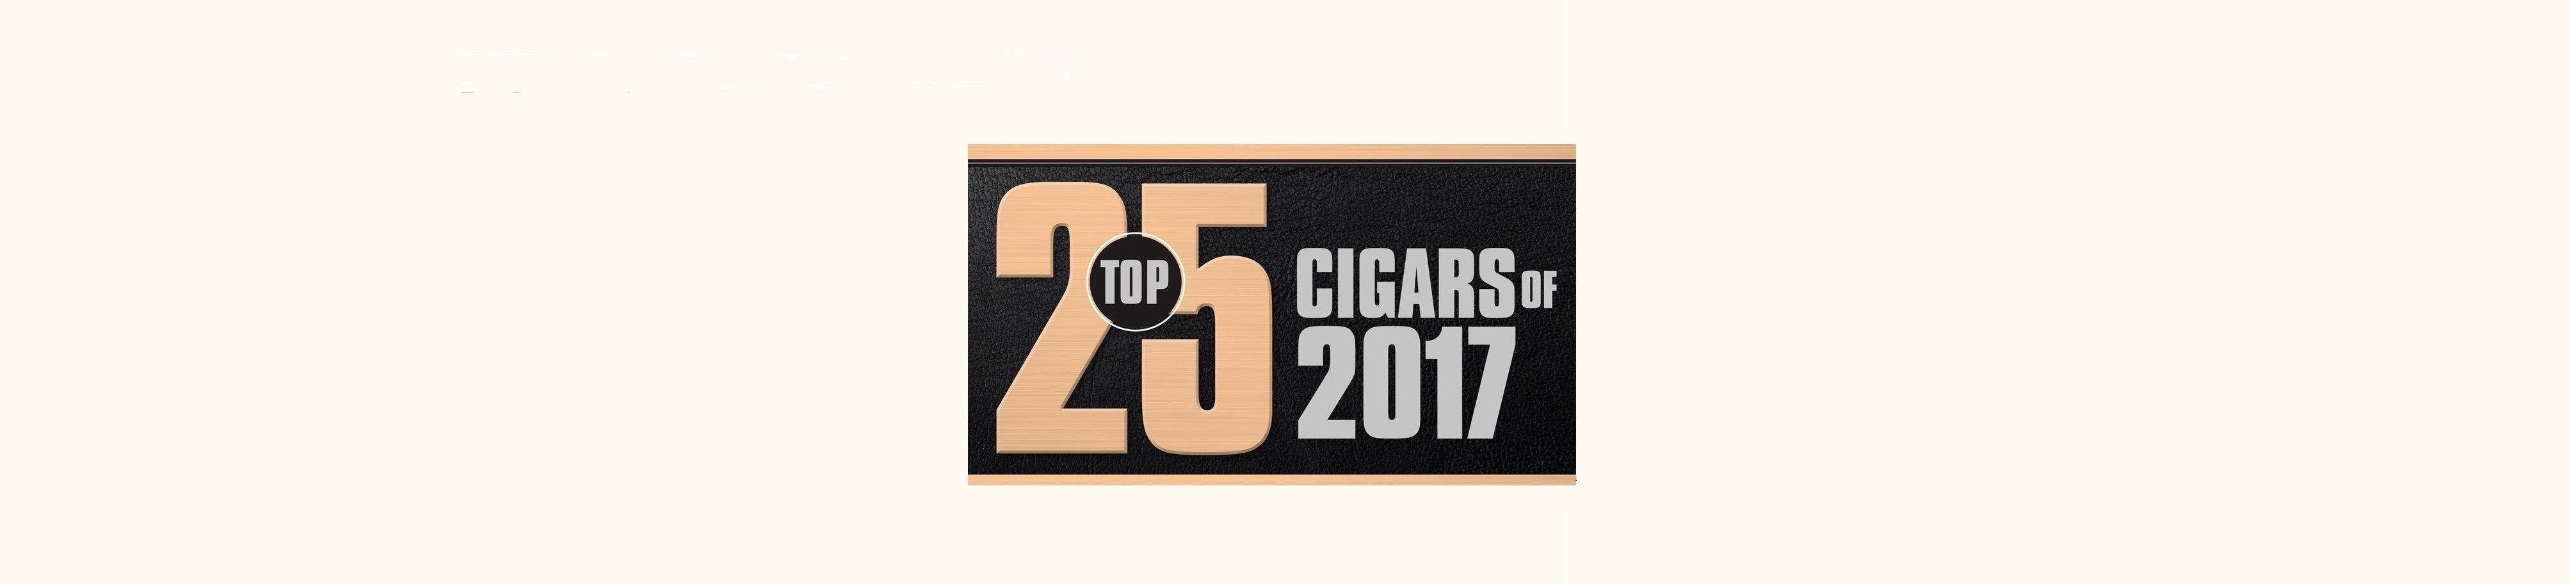 Top 25 Cigars 2017